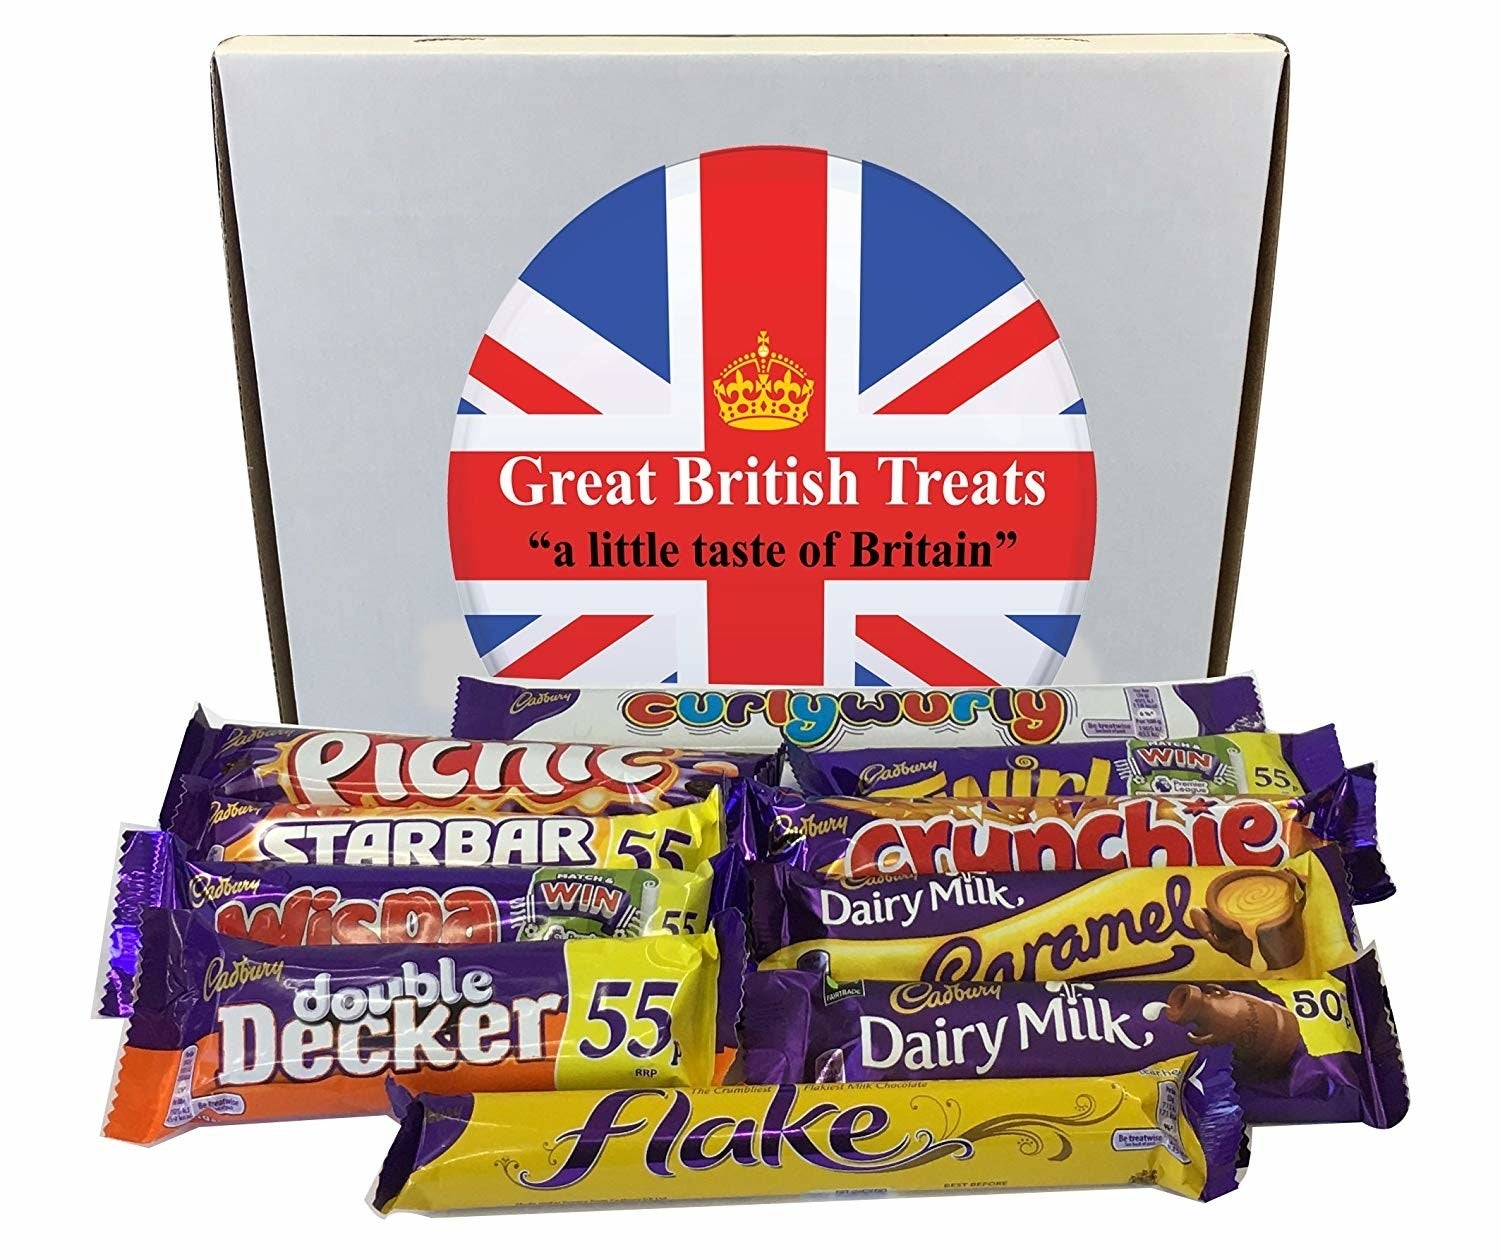 The box of British treats